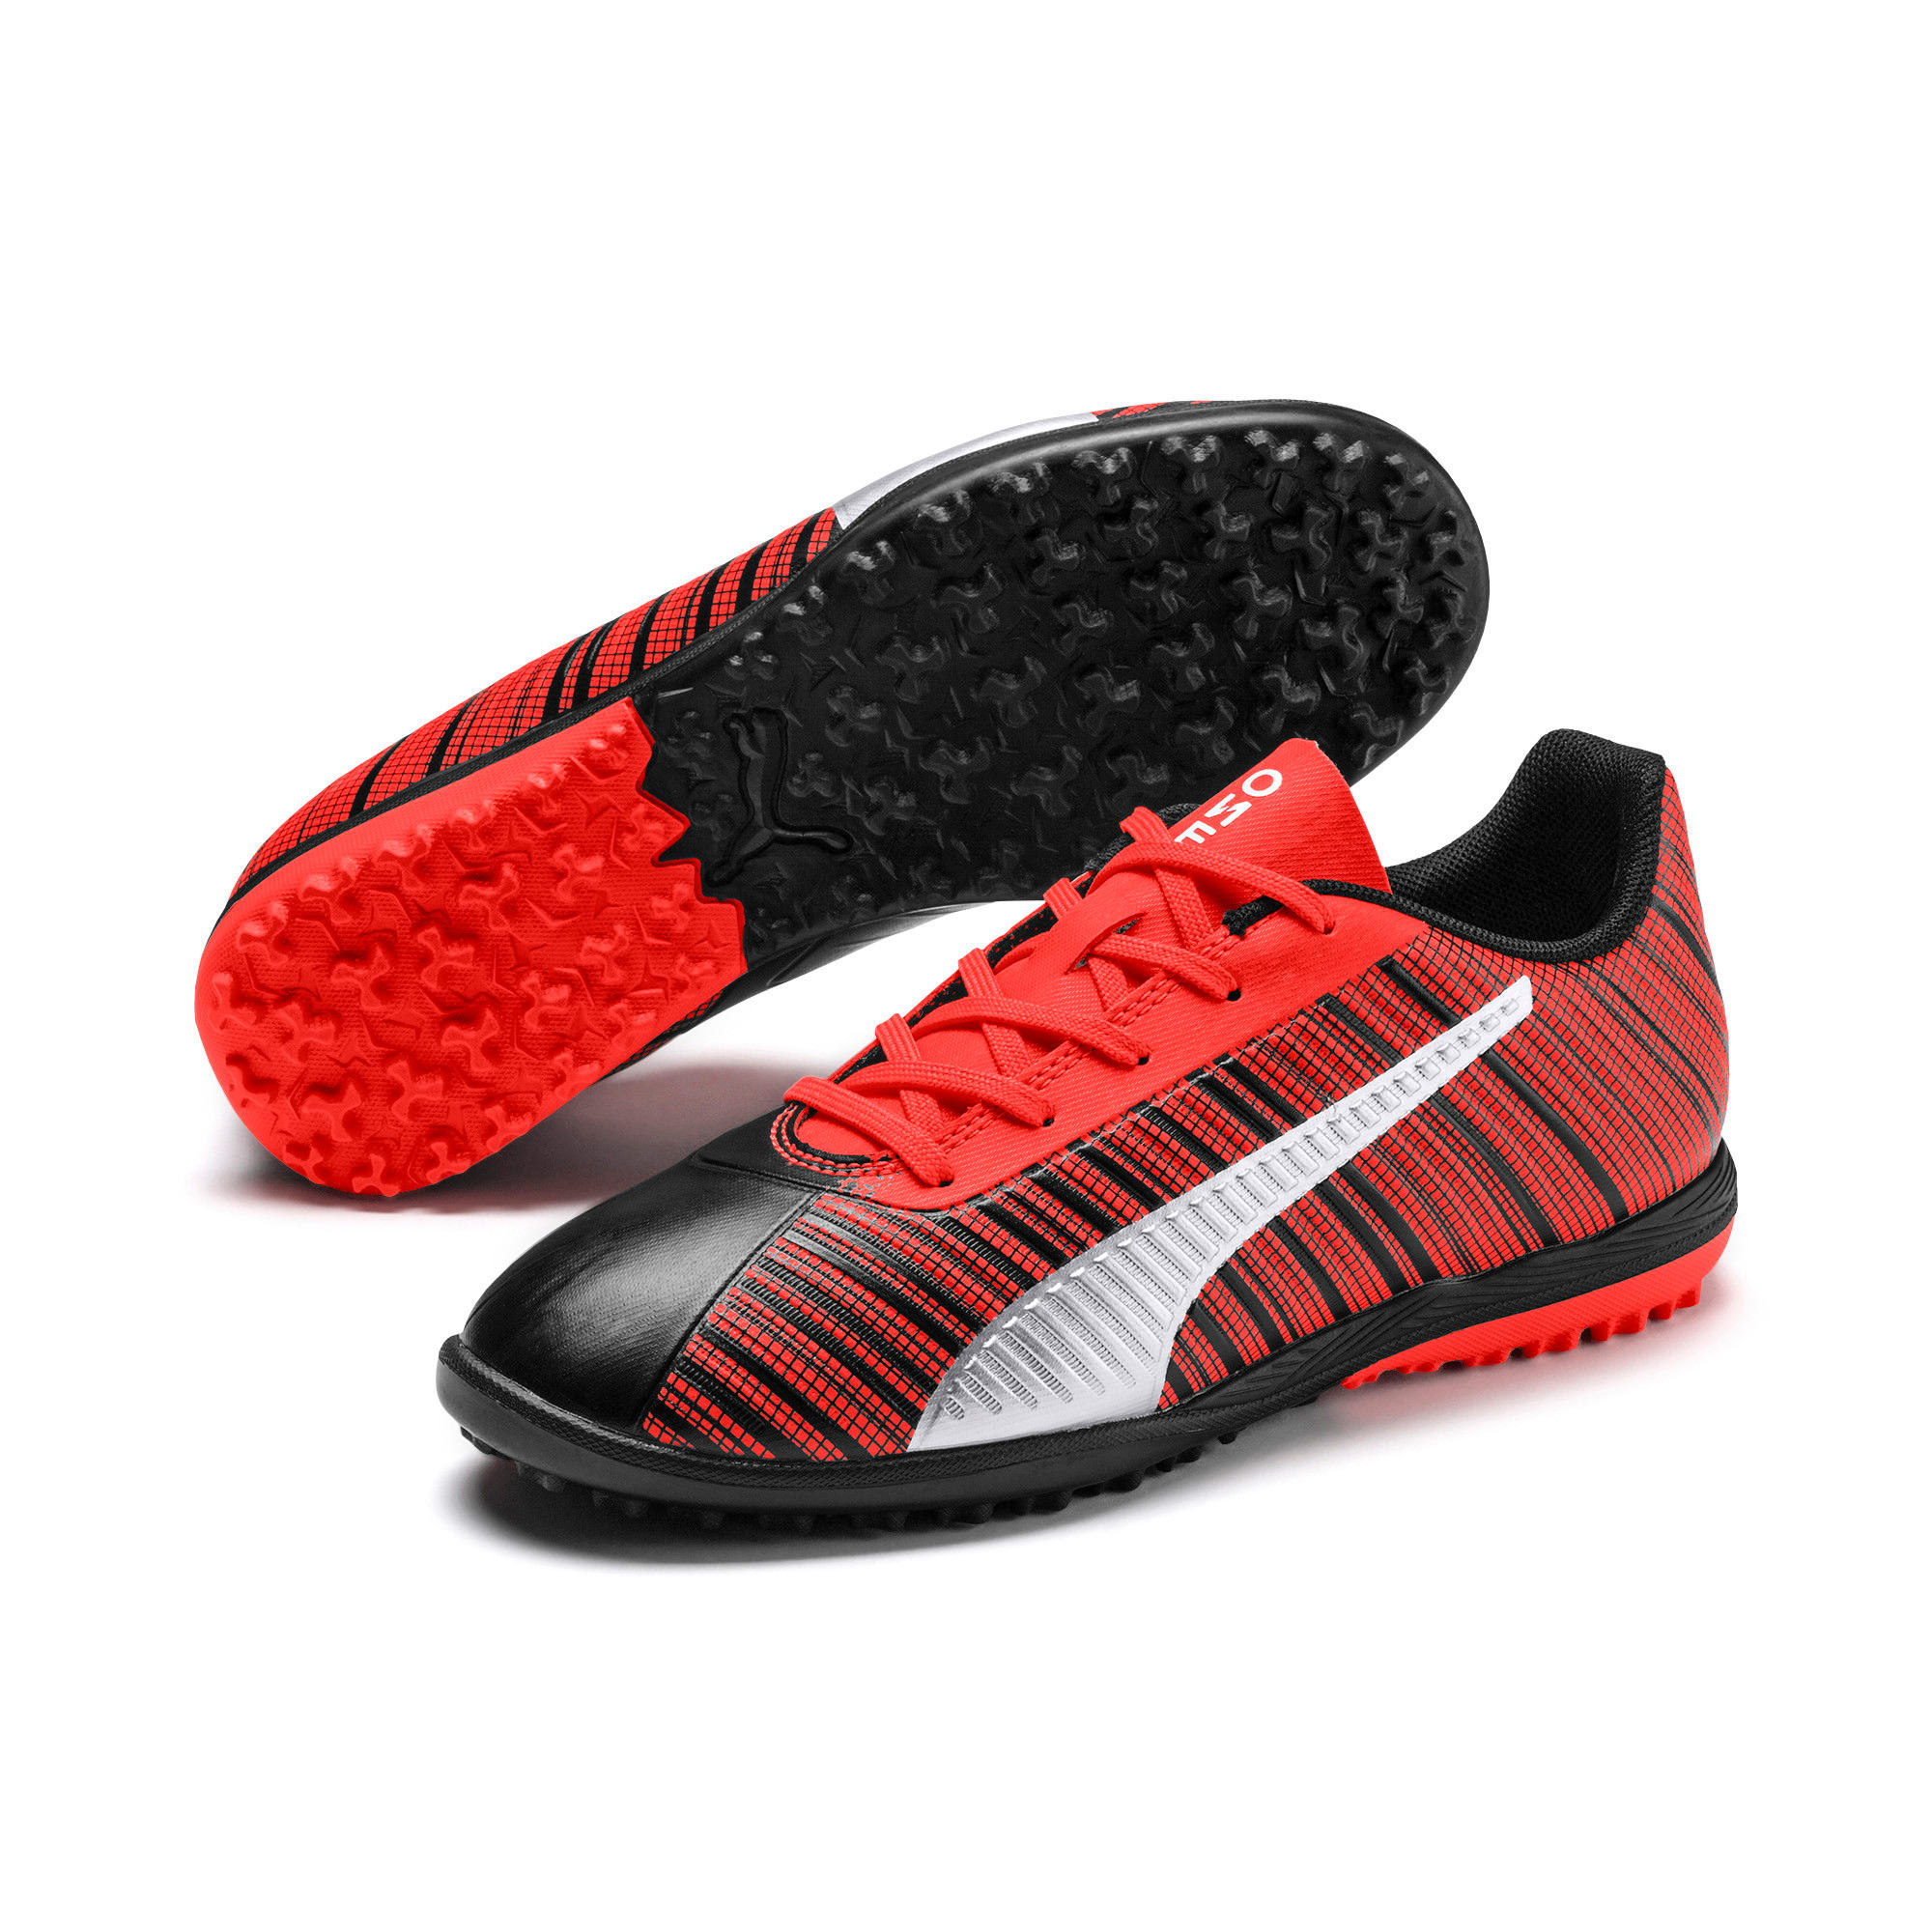 Thumbnail 2 of PUMA ONE 5.4 TT Youth Football Boots, Black-Nrgy Red-Aged Silver, medium